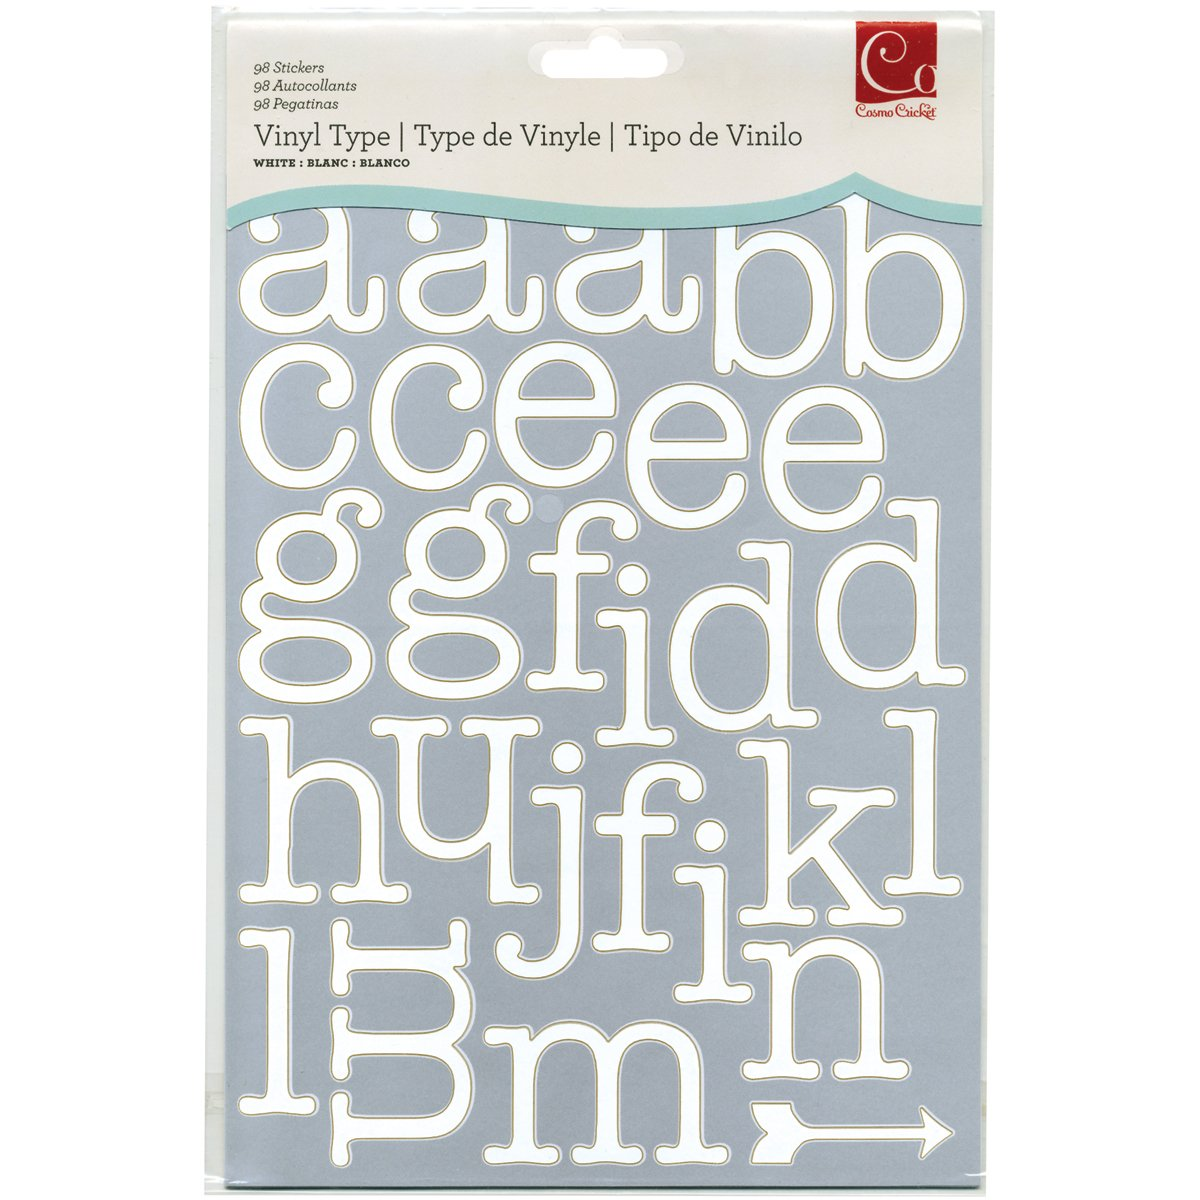 Cosmo Cricket Vinyl Letter Stickers (Pack of 3), White